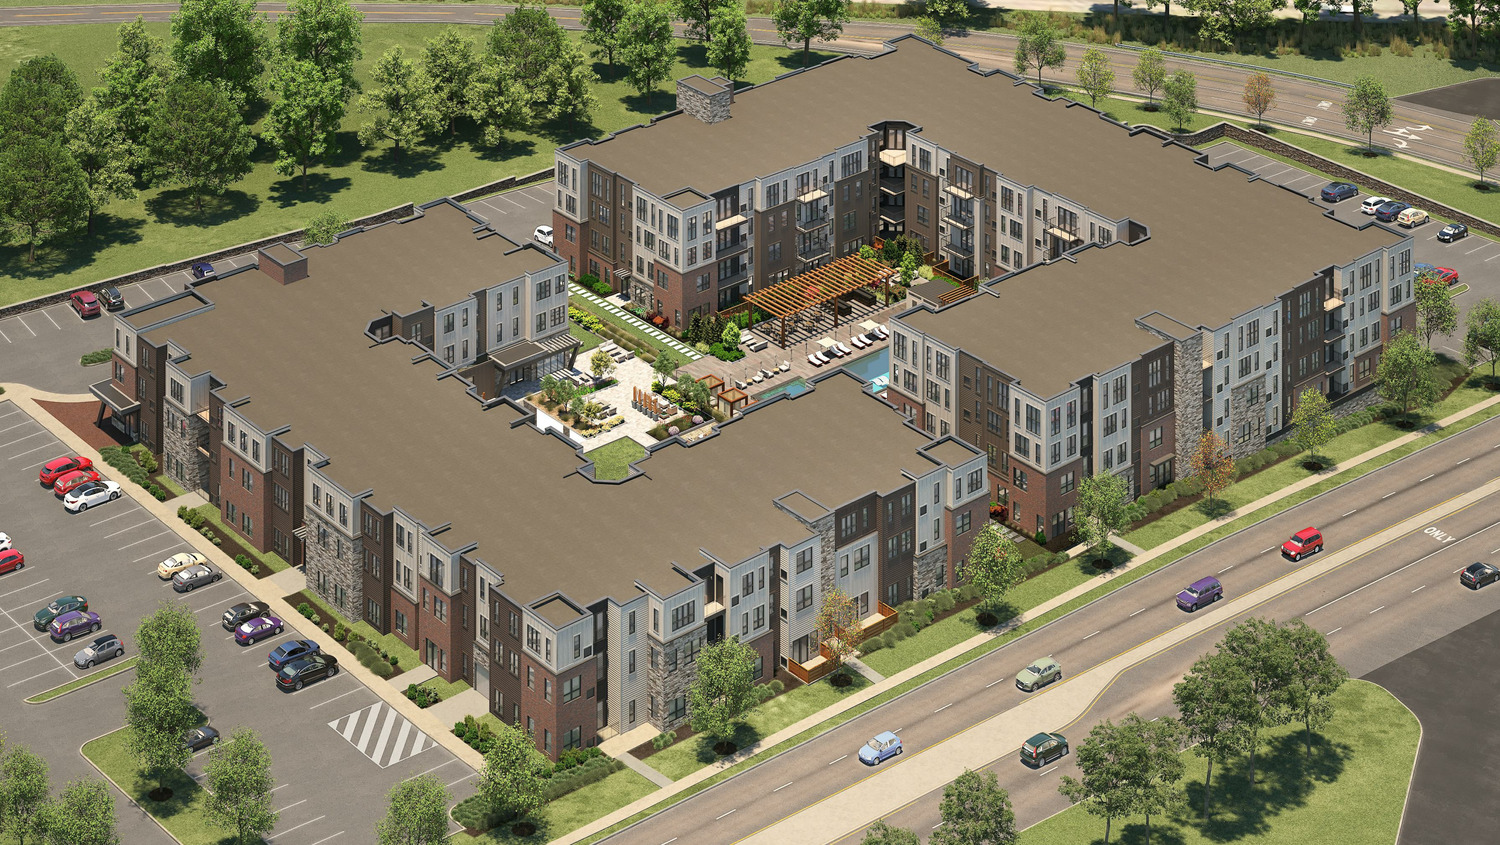 CBG builds UDR Valley Forge, a 200-Unit Luxury Apartment Community Across Two Buildings with Amenities and Parking in King of Prussia, PA